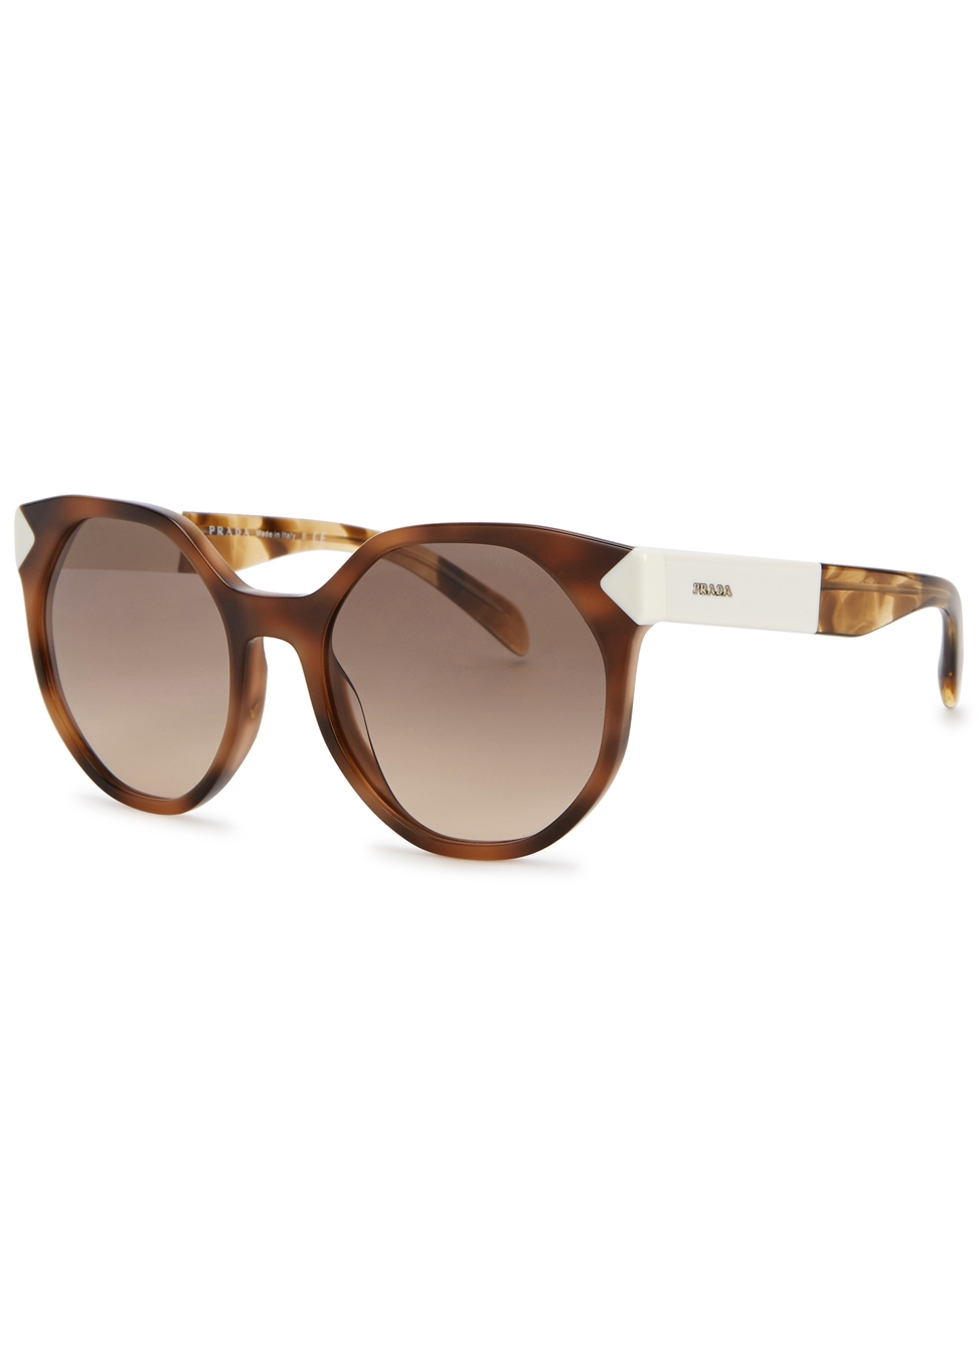 012e301b372 ... new arrivals tortoiseshell cat eye sunglasses prada cade1 e254b ...